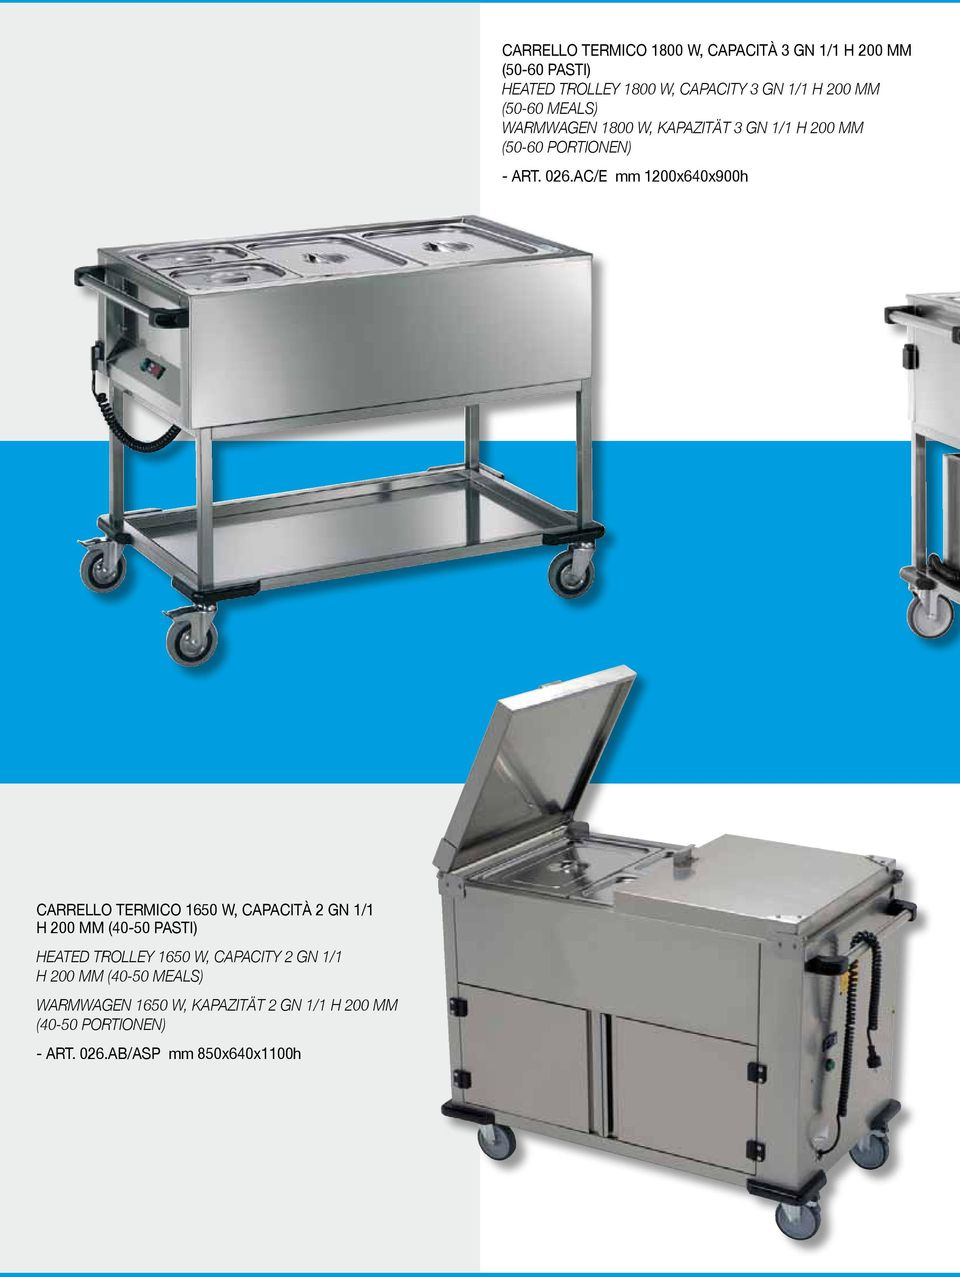 870,00 Carrello termico 1900 W, capacità 4 GN 1/1 h 200 mm (60-80 pasti) Heated trolley 1900 W, capacity 4 GN 1/1 h 200 mm (60-80 meals) Warmwagen 1900 W, Kapazität 4 GN